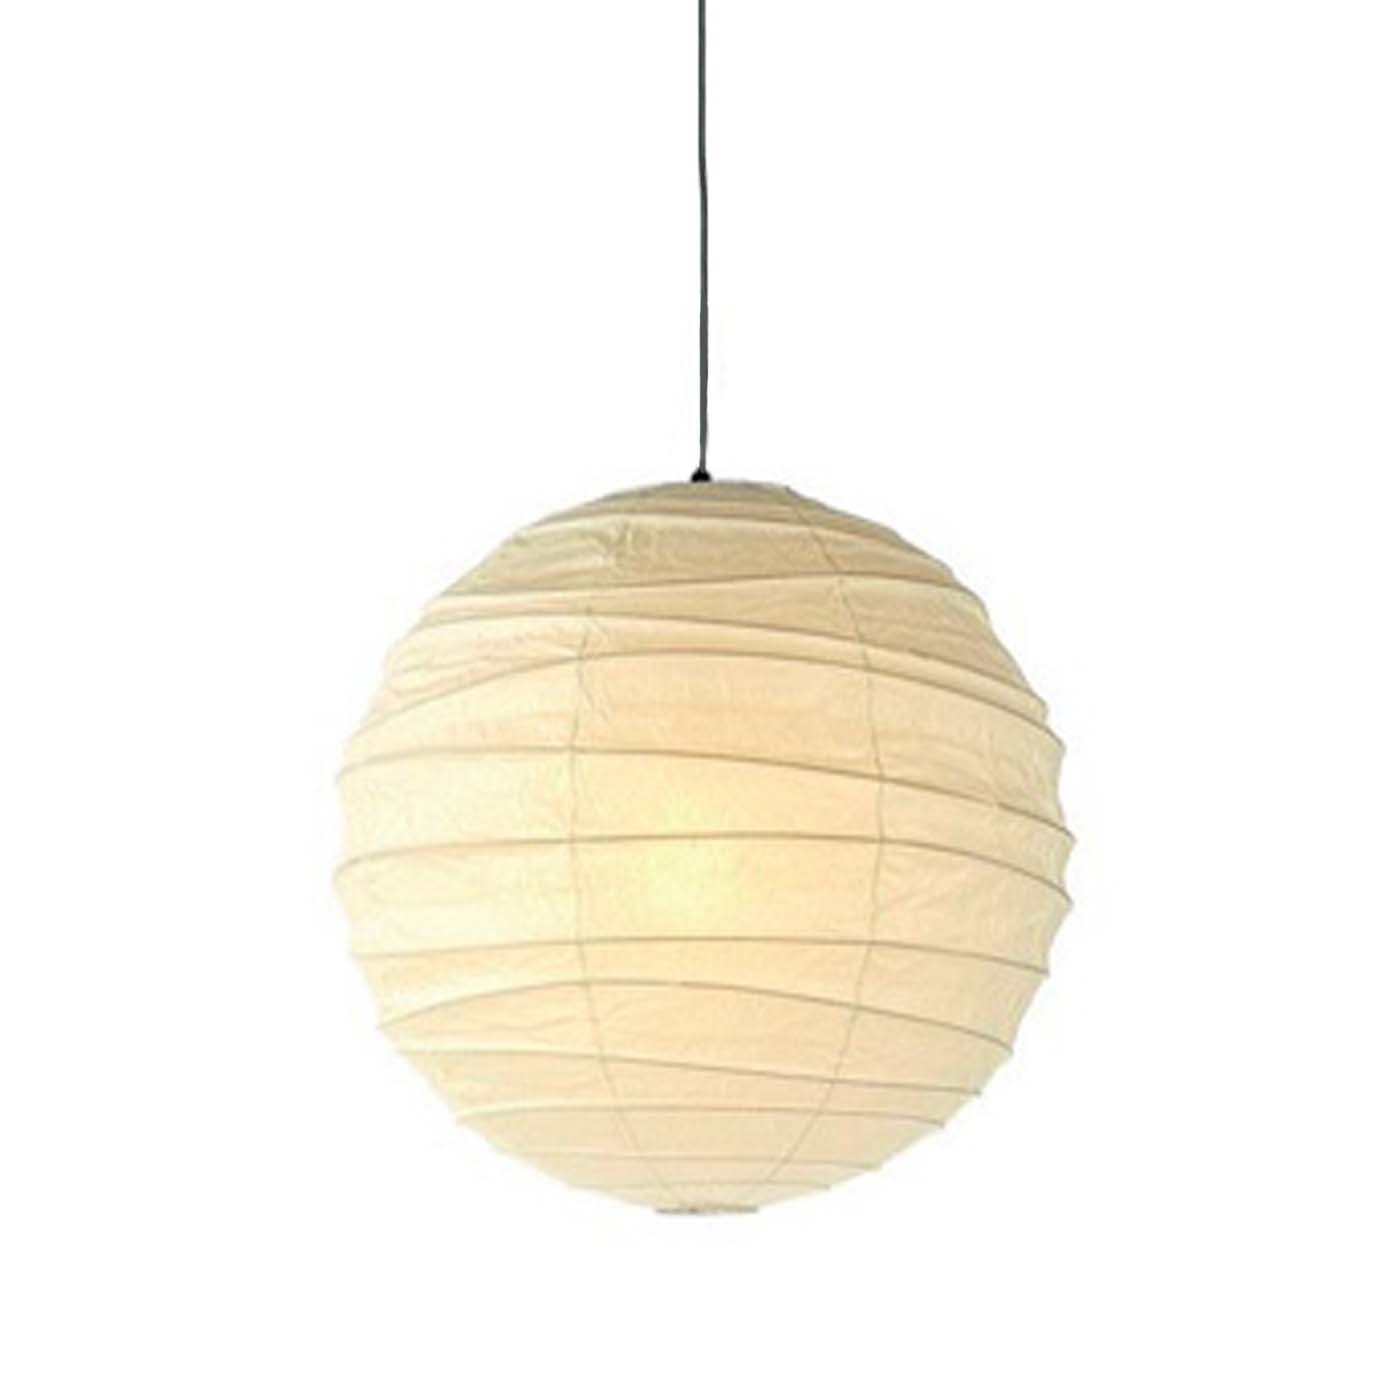 detailed pictures 04eed 92cf5 Isamu Noguchi 55A Pendant Lamp by eBay - Dwell